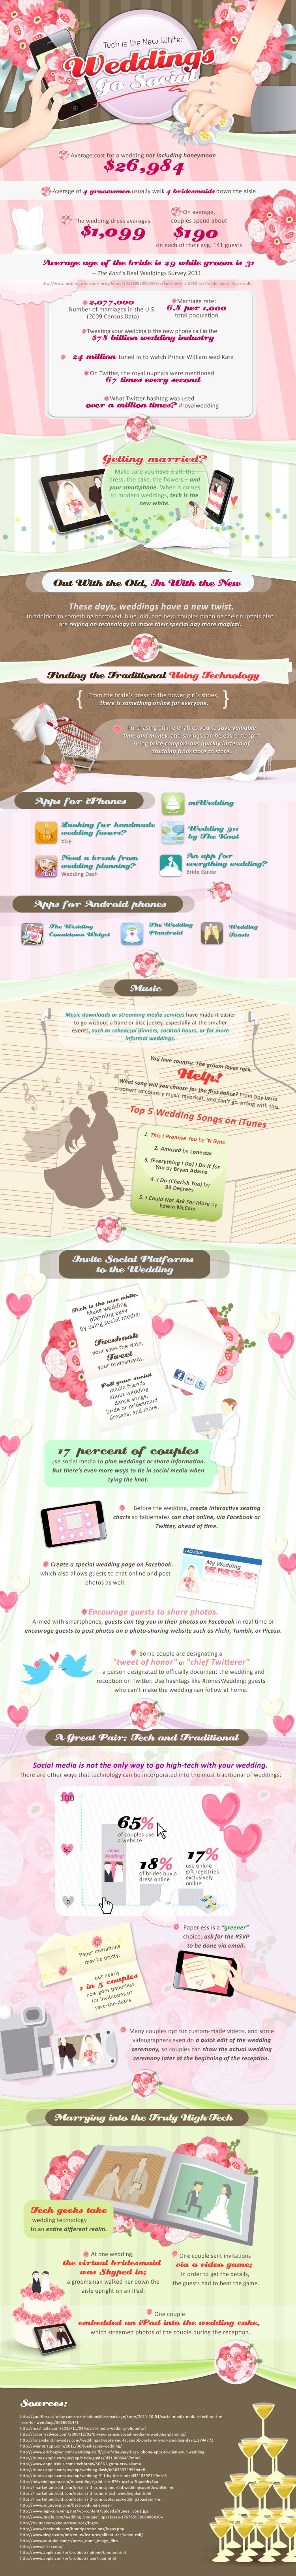 Social-Weddings-Trends